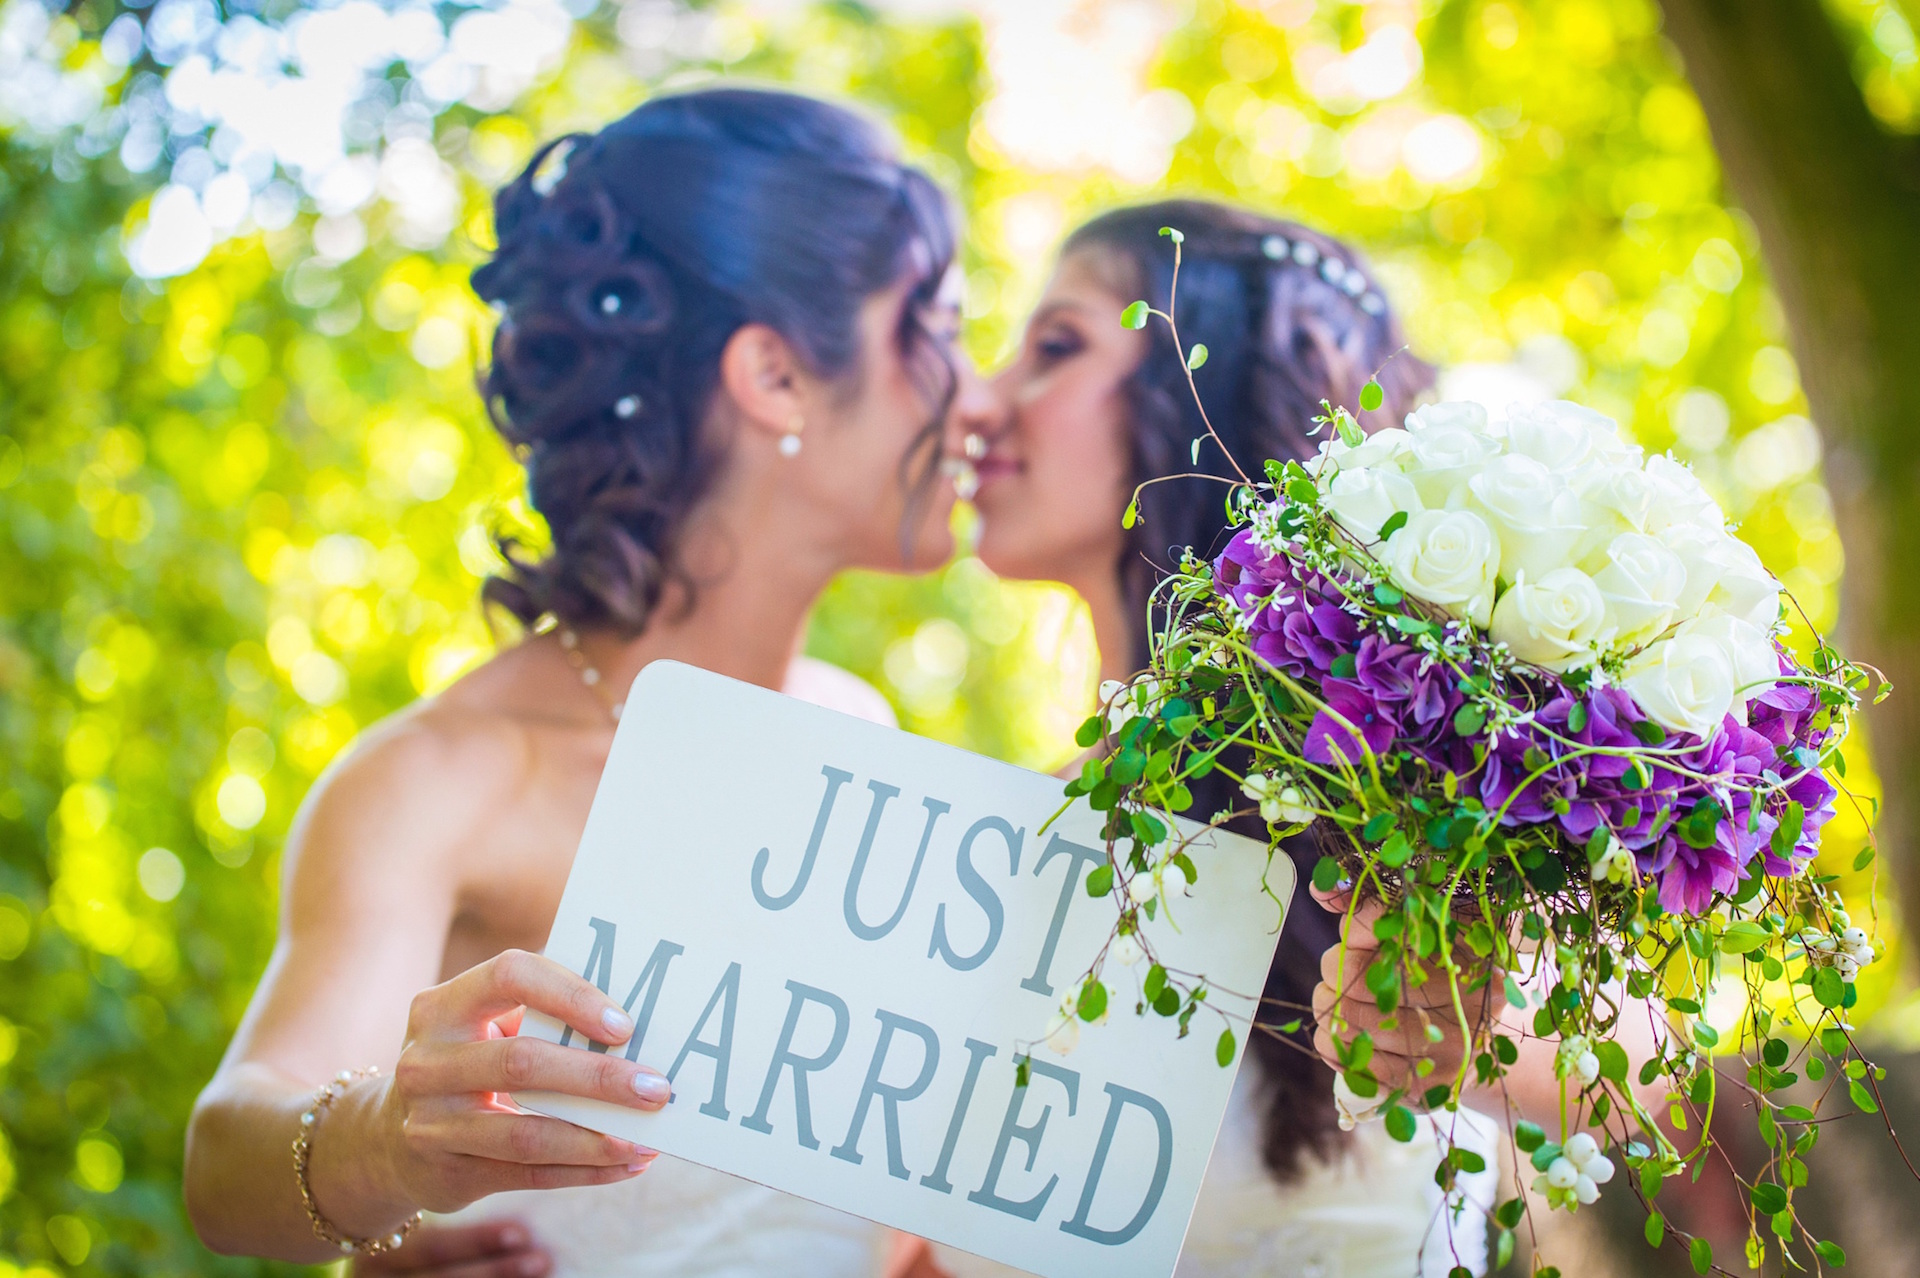 lesbian and gay marriage Average household income of gay couples in the us 90,493 usd gay millennial men living in an urban/big city environment 50% gay and lesbian americans living with spouse/partner/lover 463% gay.